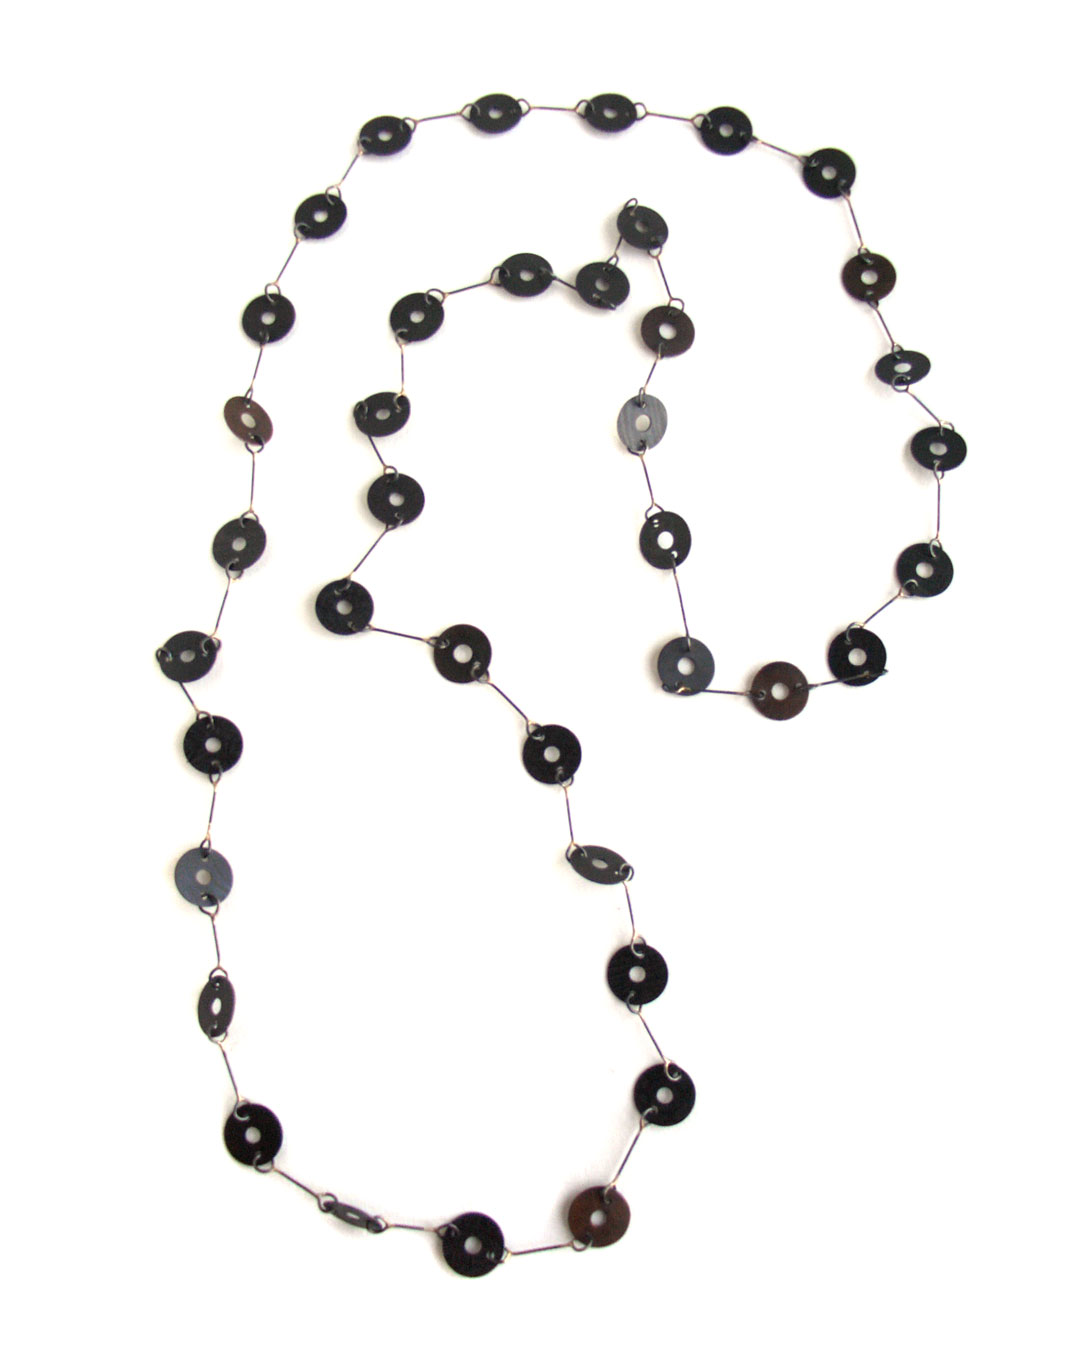 Tore Svensson, untitled, 2005, necklace; steel, partly gilt, 600 mm, €1480